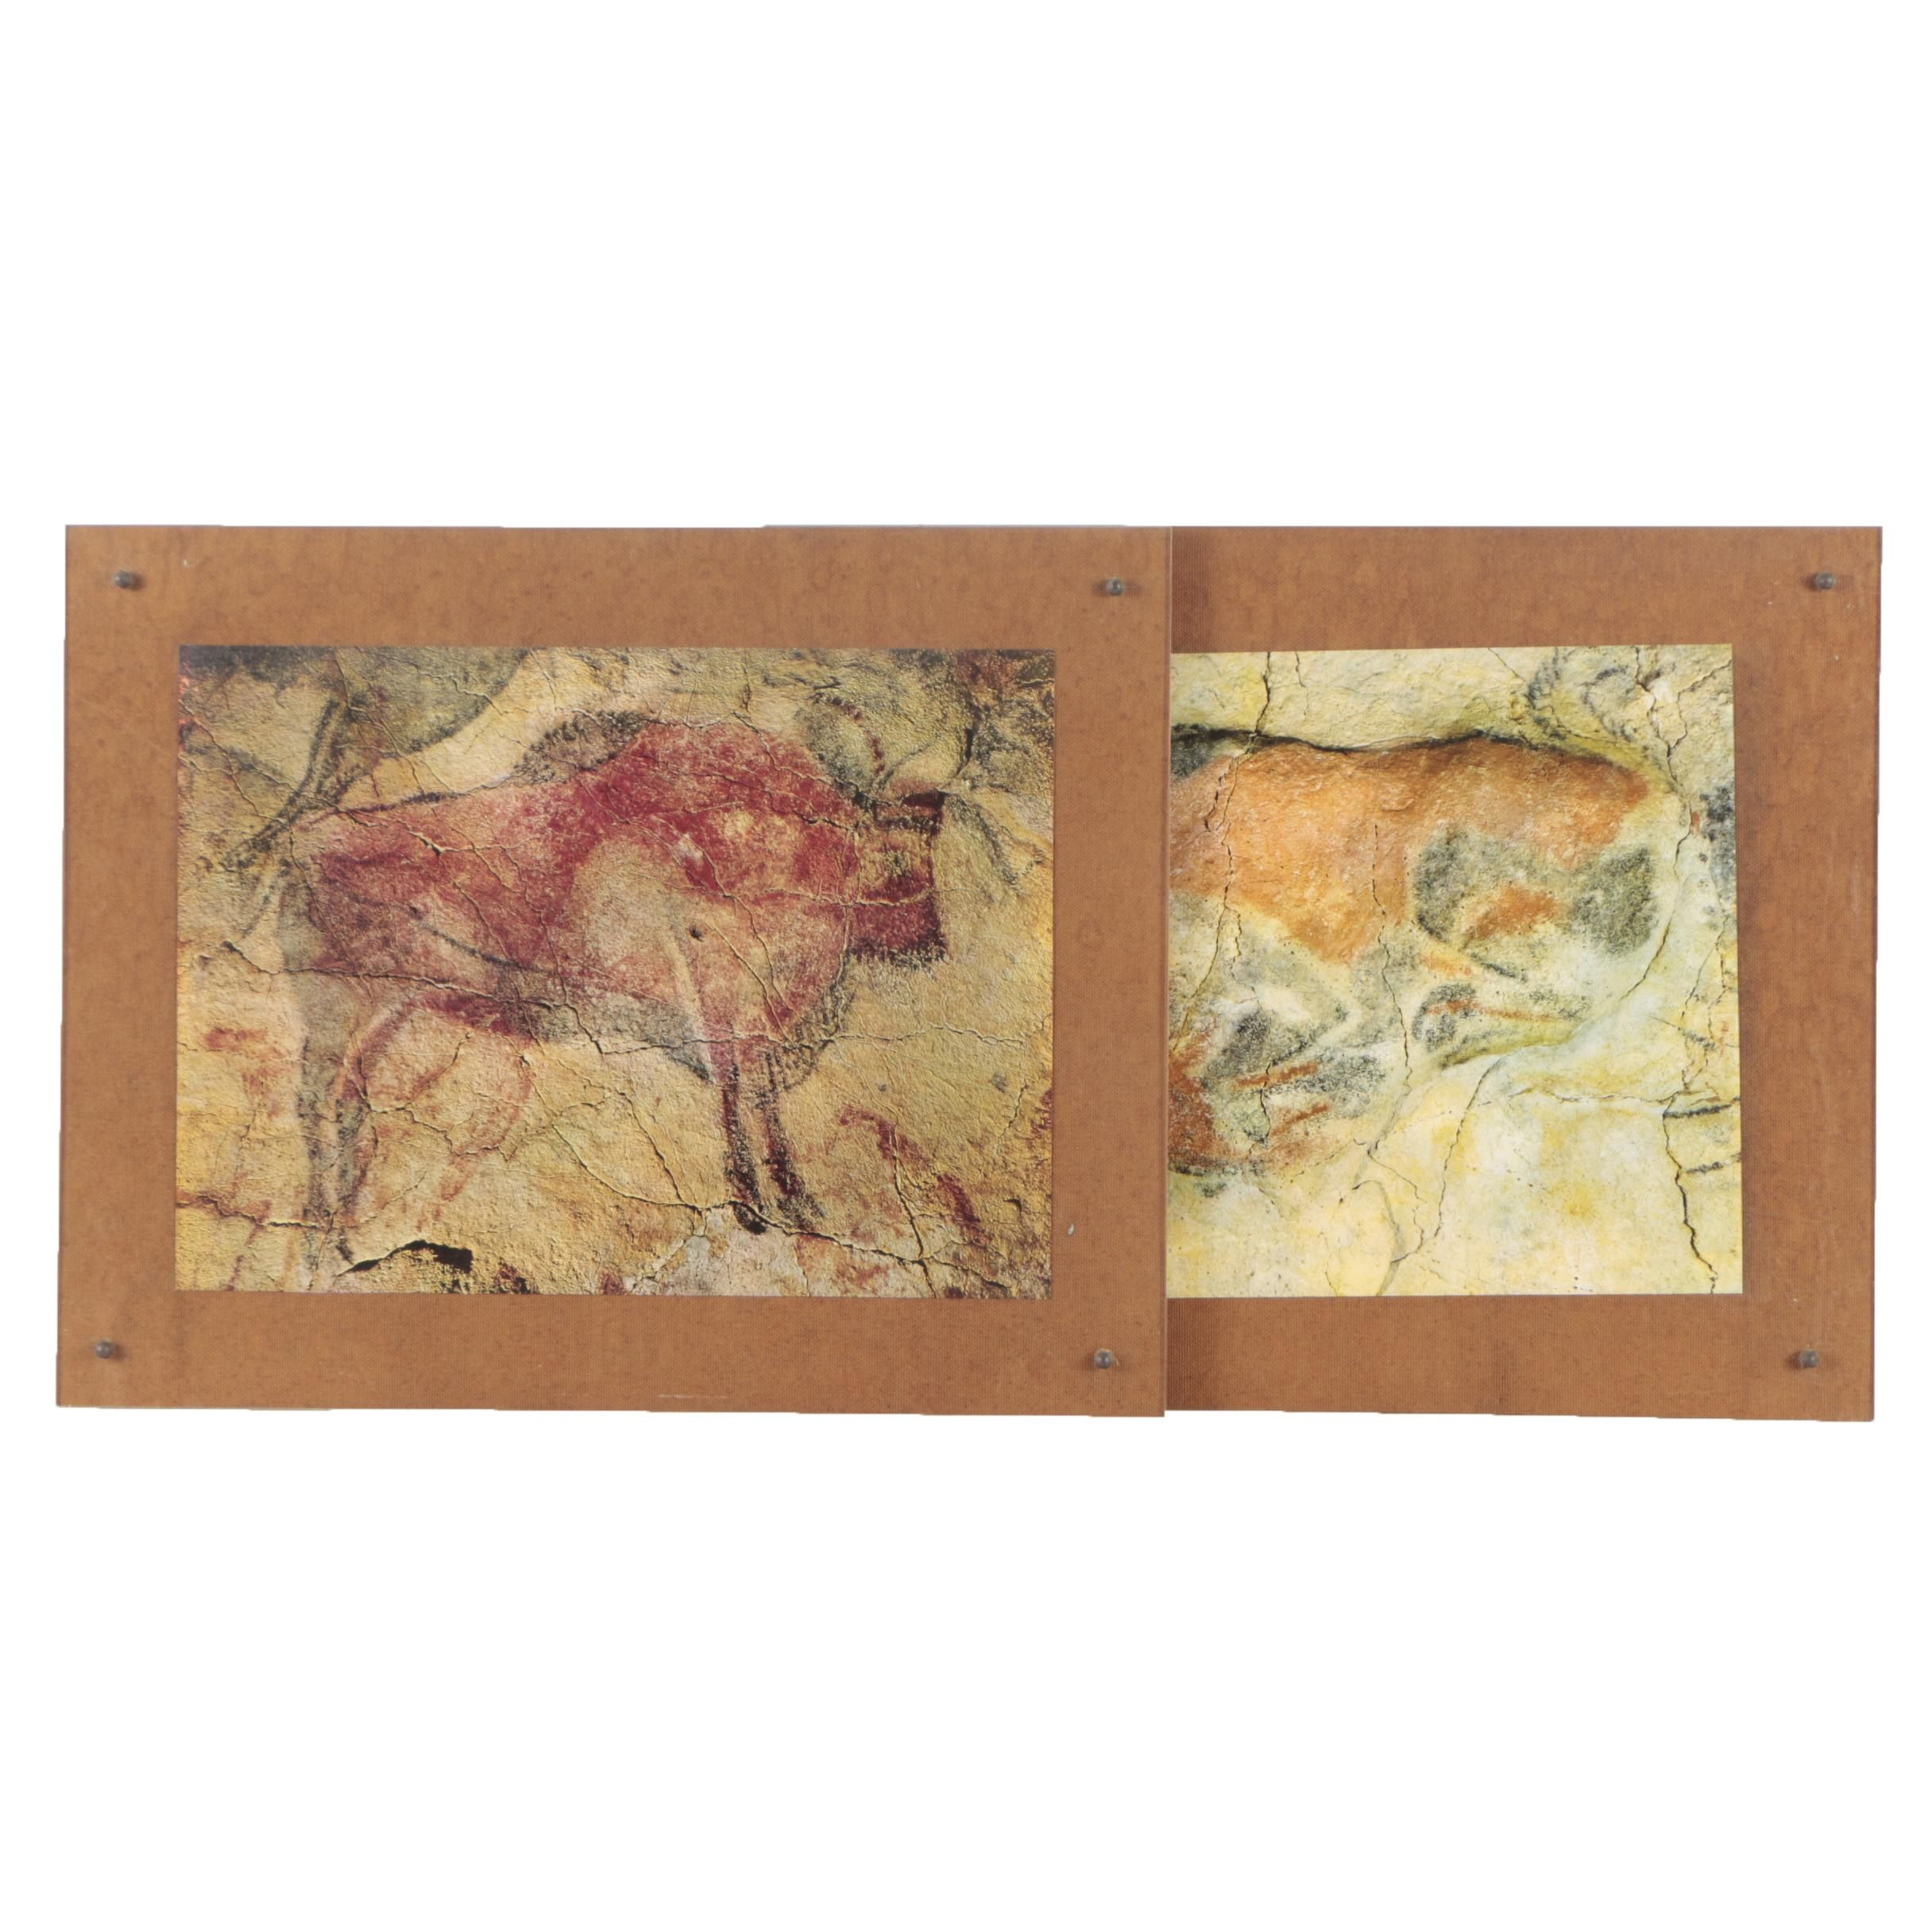 Offset Lithographic Prints of Paleolithic Cave Paintings